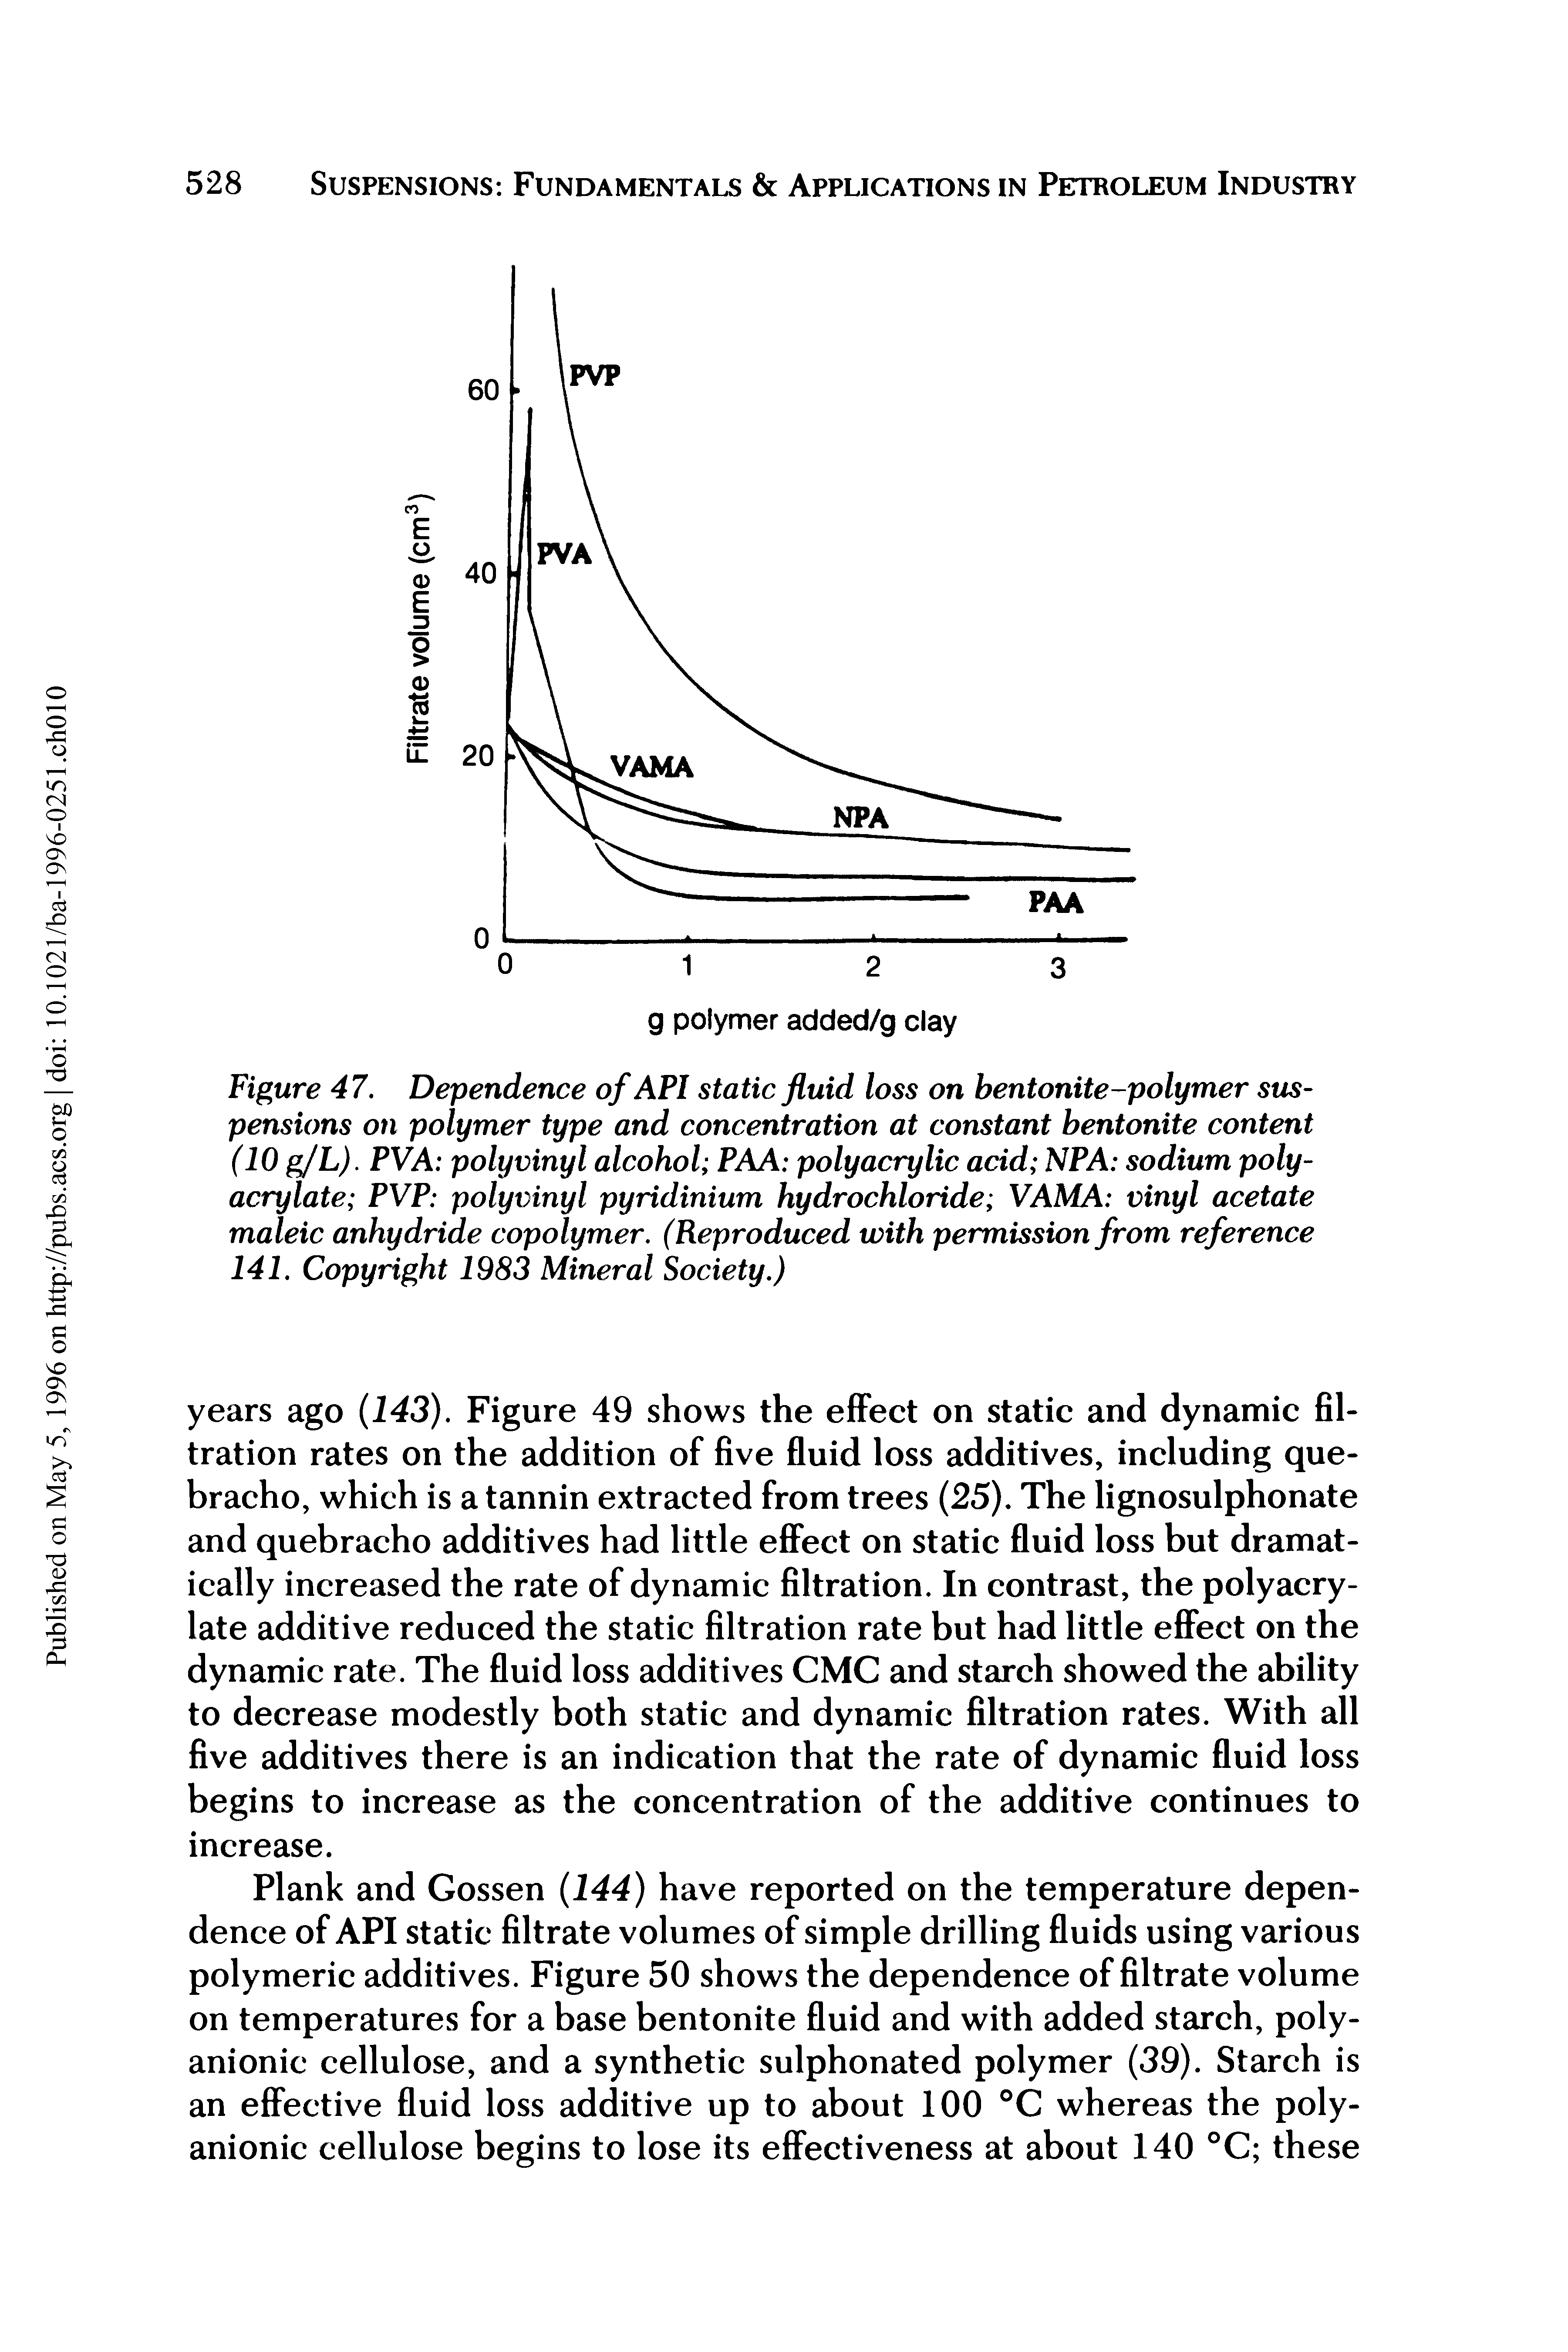 "Figure 47. Dependence of API <a href=""/info/fluids_loss_static"">static fluid loss</a> on bentonite-<a href=""/info/polymer_suspension"">polymer suspensions</a> on <a href=""/info/polymer_gel_type"">polymer type</a> and concentration at constant bentonite content (10 g/L). PVA <a href=""/info/polyvinyl_alcohol"">polyvinyl alcohol</a> PAA <a href=""/info/polyacrylic_acid"">polyacrylic acid</a> NPA <a href=""/info/sodium_polyacrylate"">sodium polyacrylate</a> PVP polyvinyl <a href=""/info/pyridinium_hydrochloride"">pyridinium hydrochloride</a> VAMA <a href=""/info/vinyl_acetate"">vinyl acetate</a> <a href=""/info/maleic_anhydride_copolymer"">maleic anhydride copolymer</a>. (Reproduced with permission from reference 141. Copyright 1983 Mineral Society.)"